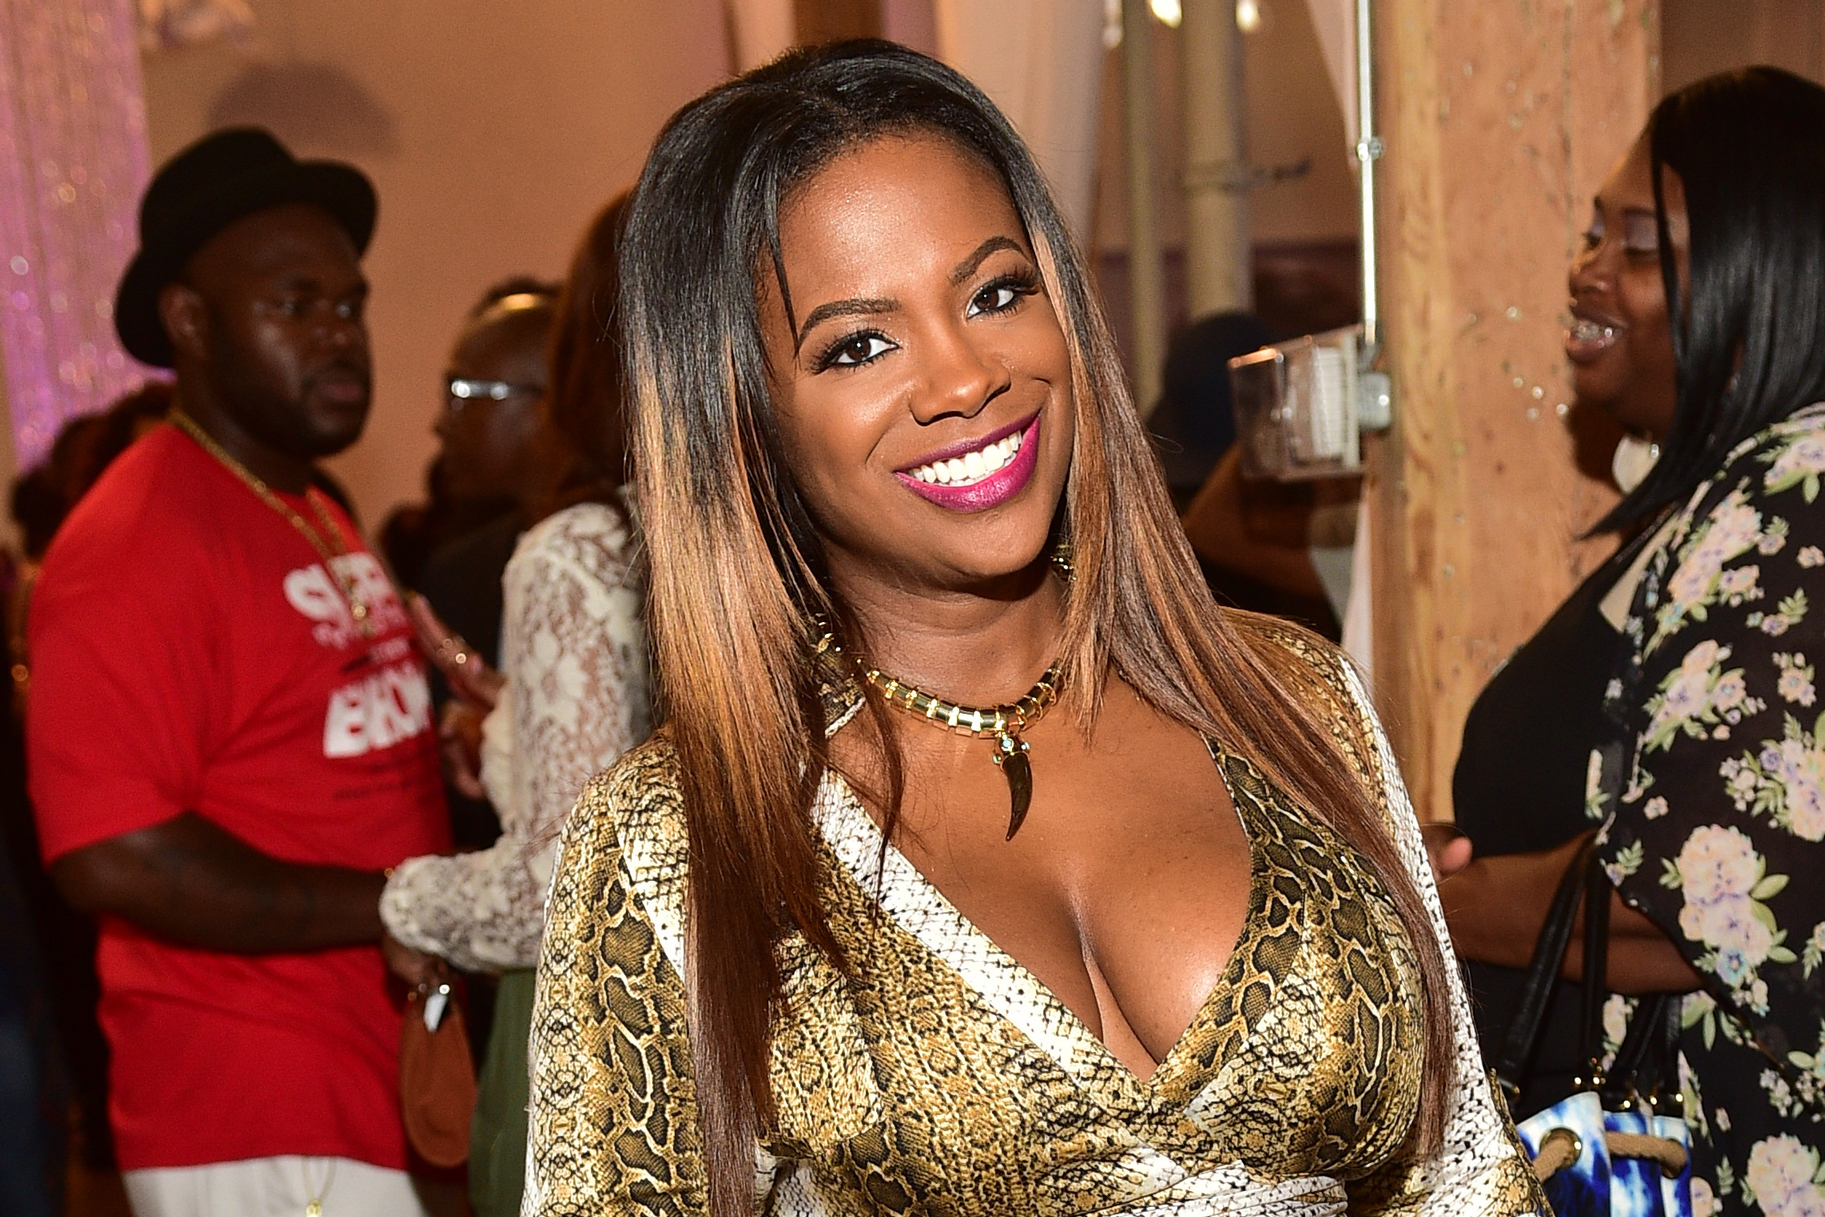 kandi-burruss-gushes-over-her-favorite-guys-in-the-world-see-her-pics-with-todd-tucker-and-ace-wells-tucker